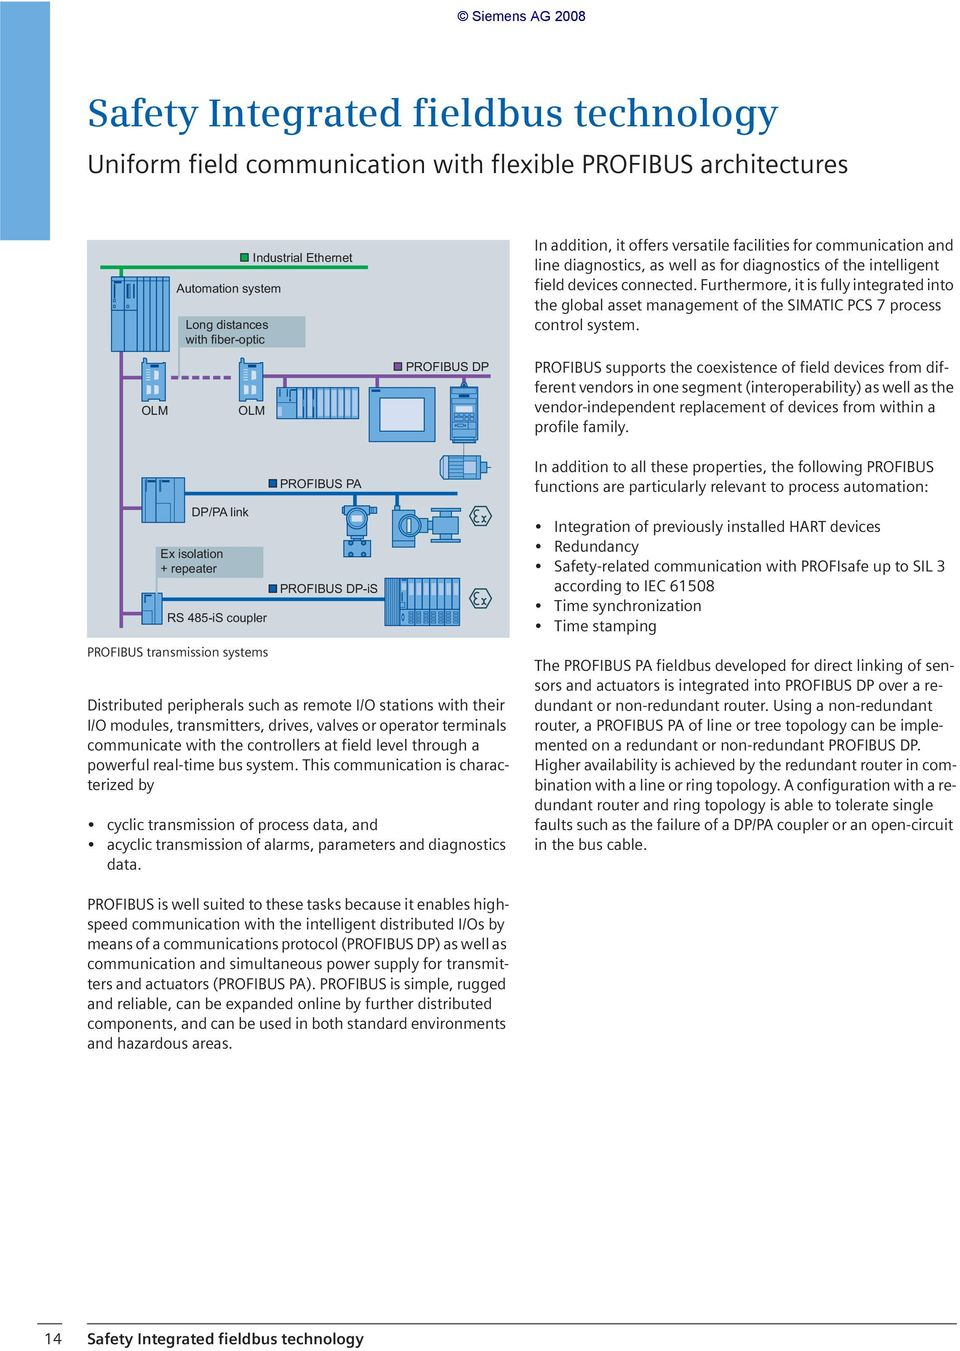 Furthermore, it is fully integrated into the global asset management of the SIMATIC PCS 7 process control system.